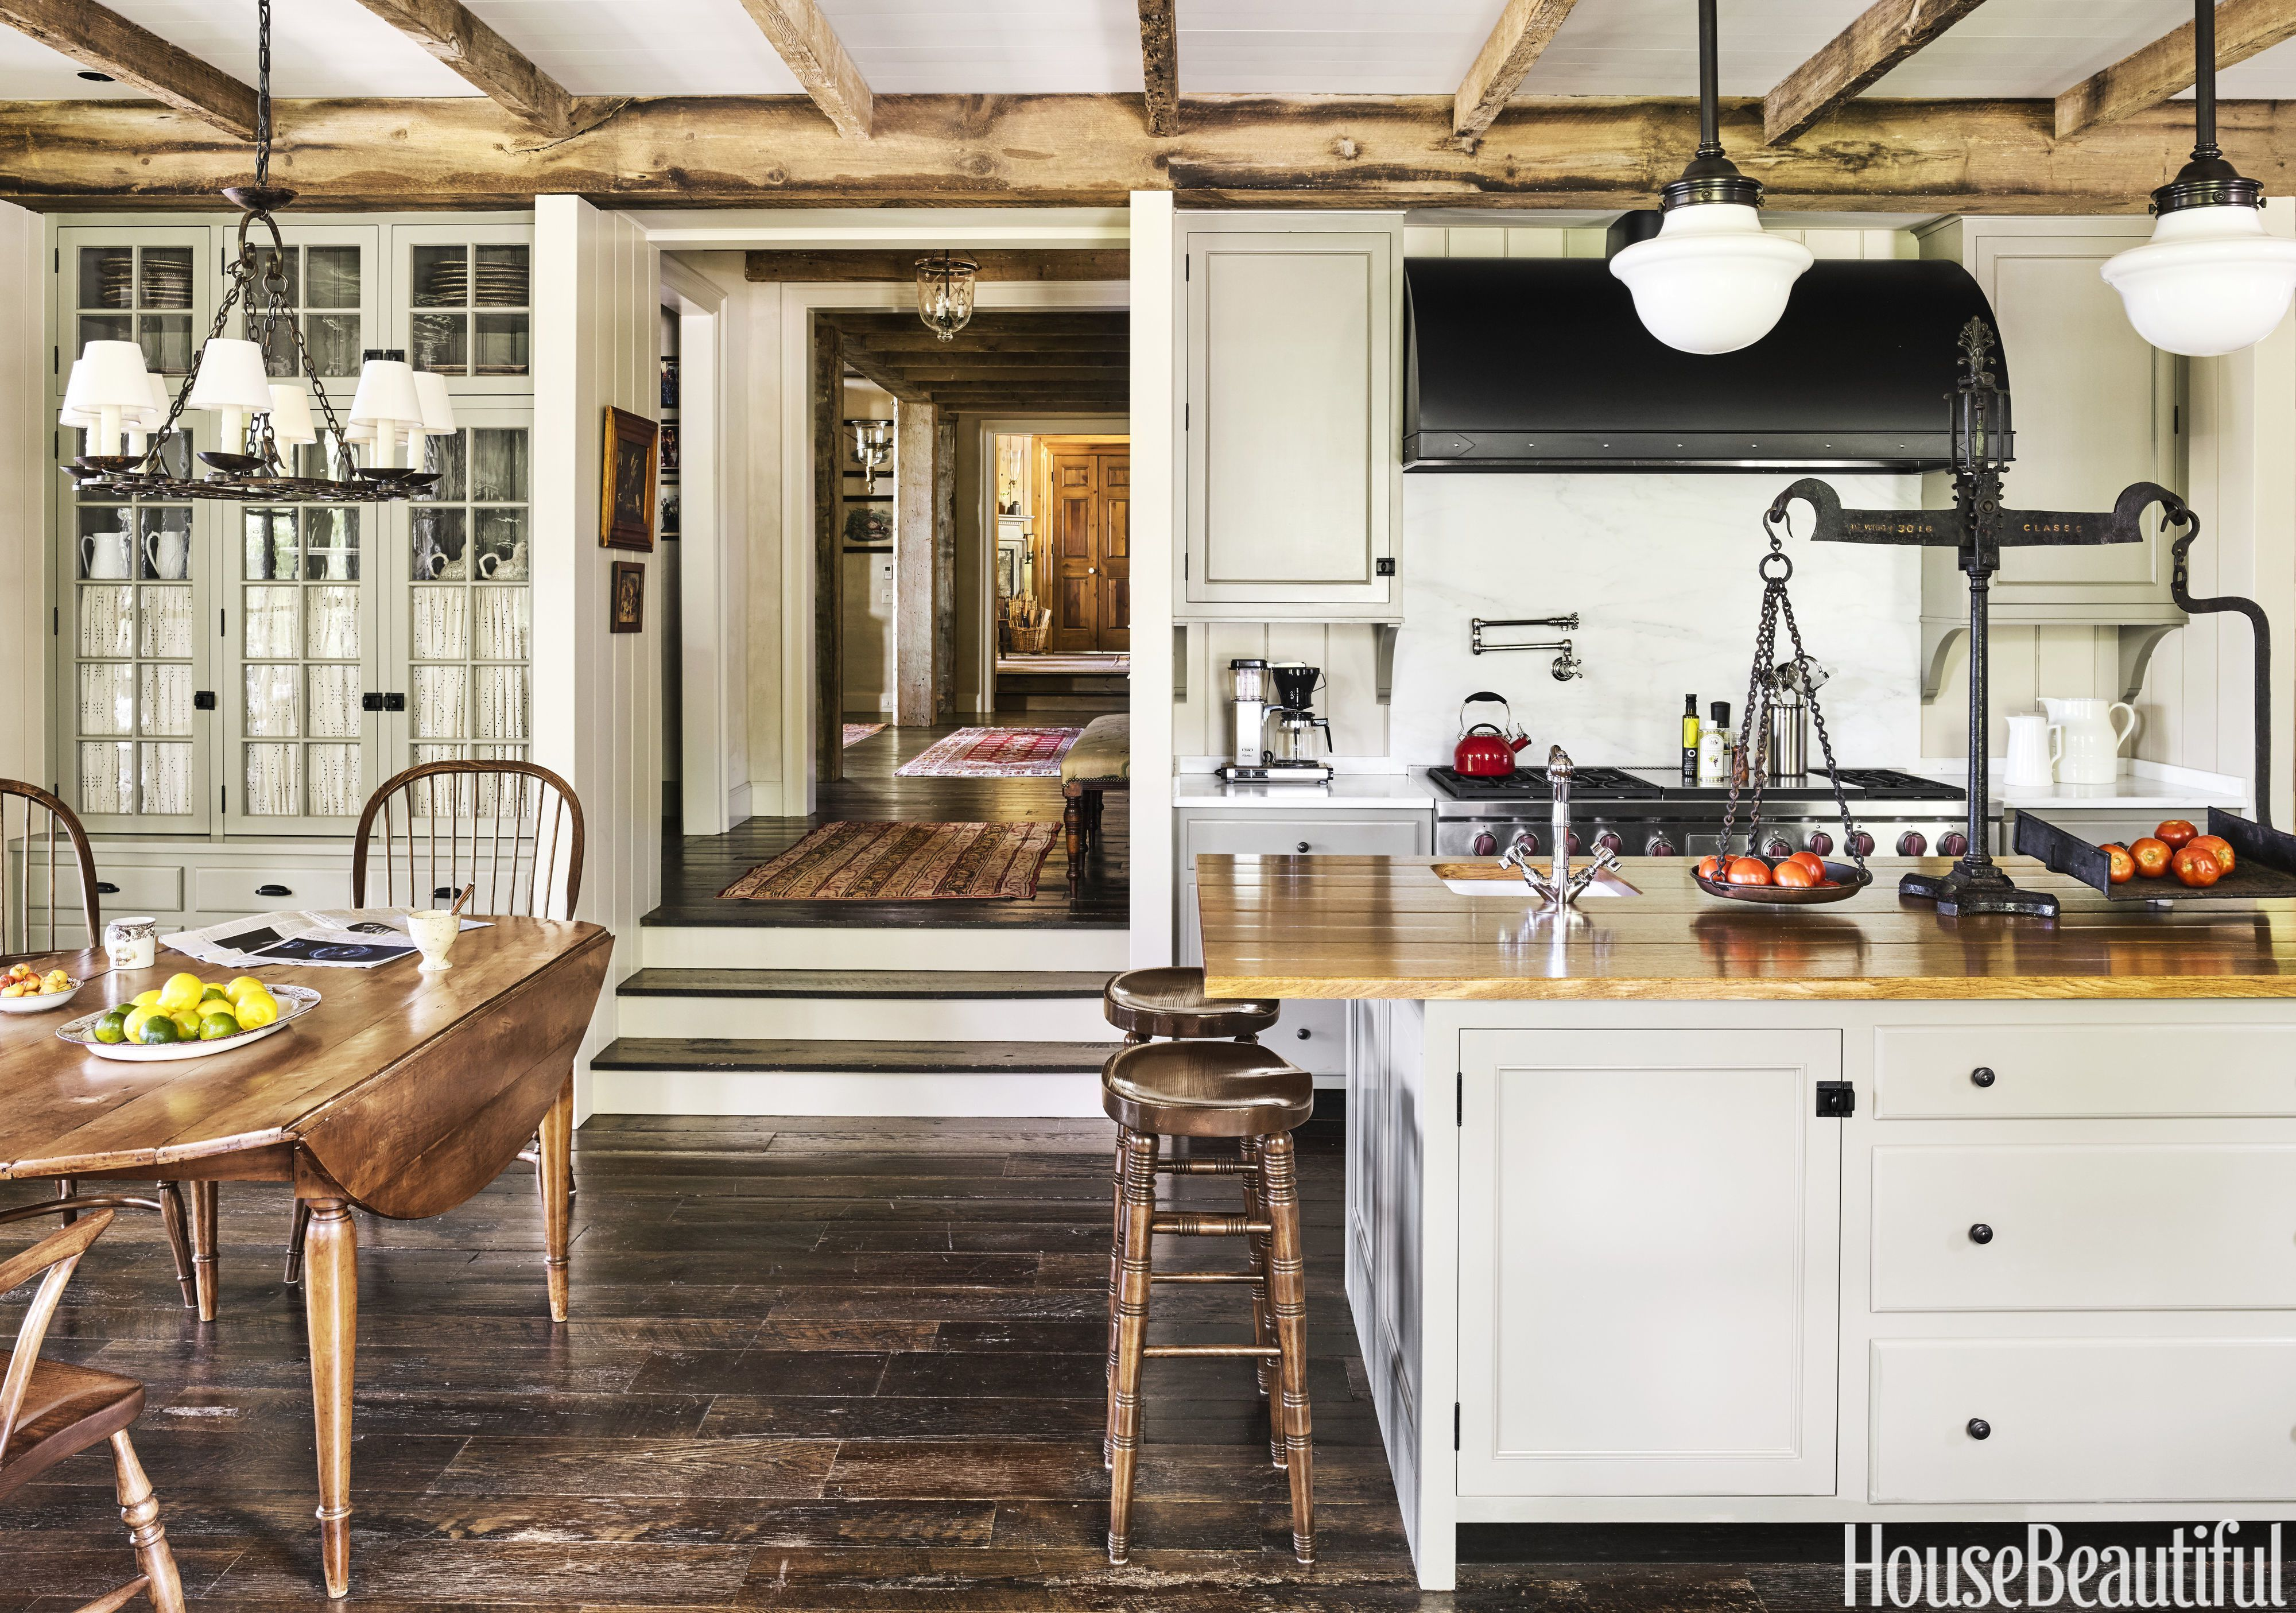 Modern Country Rustic Kitchen